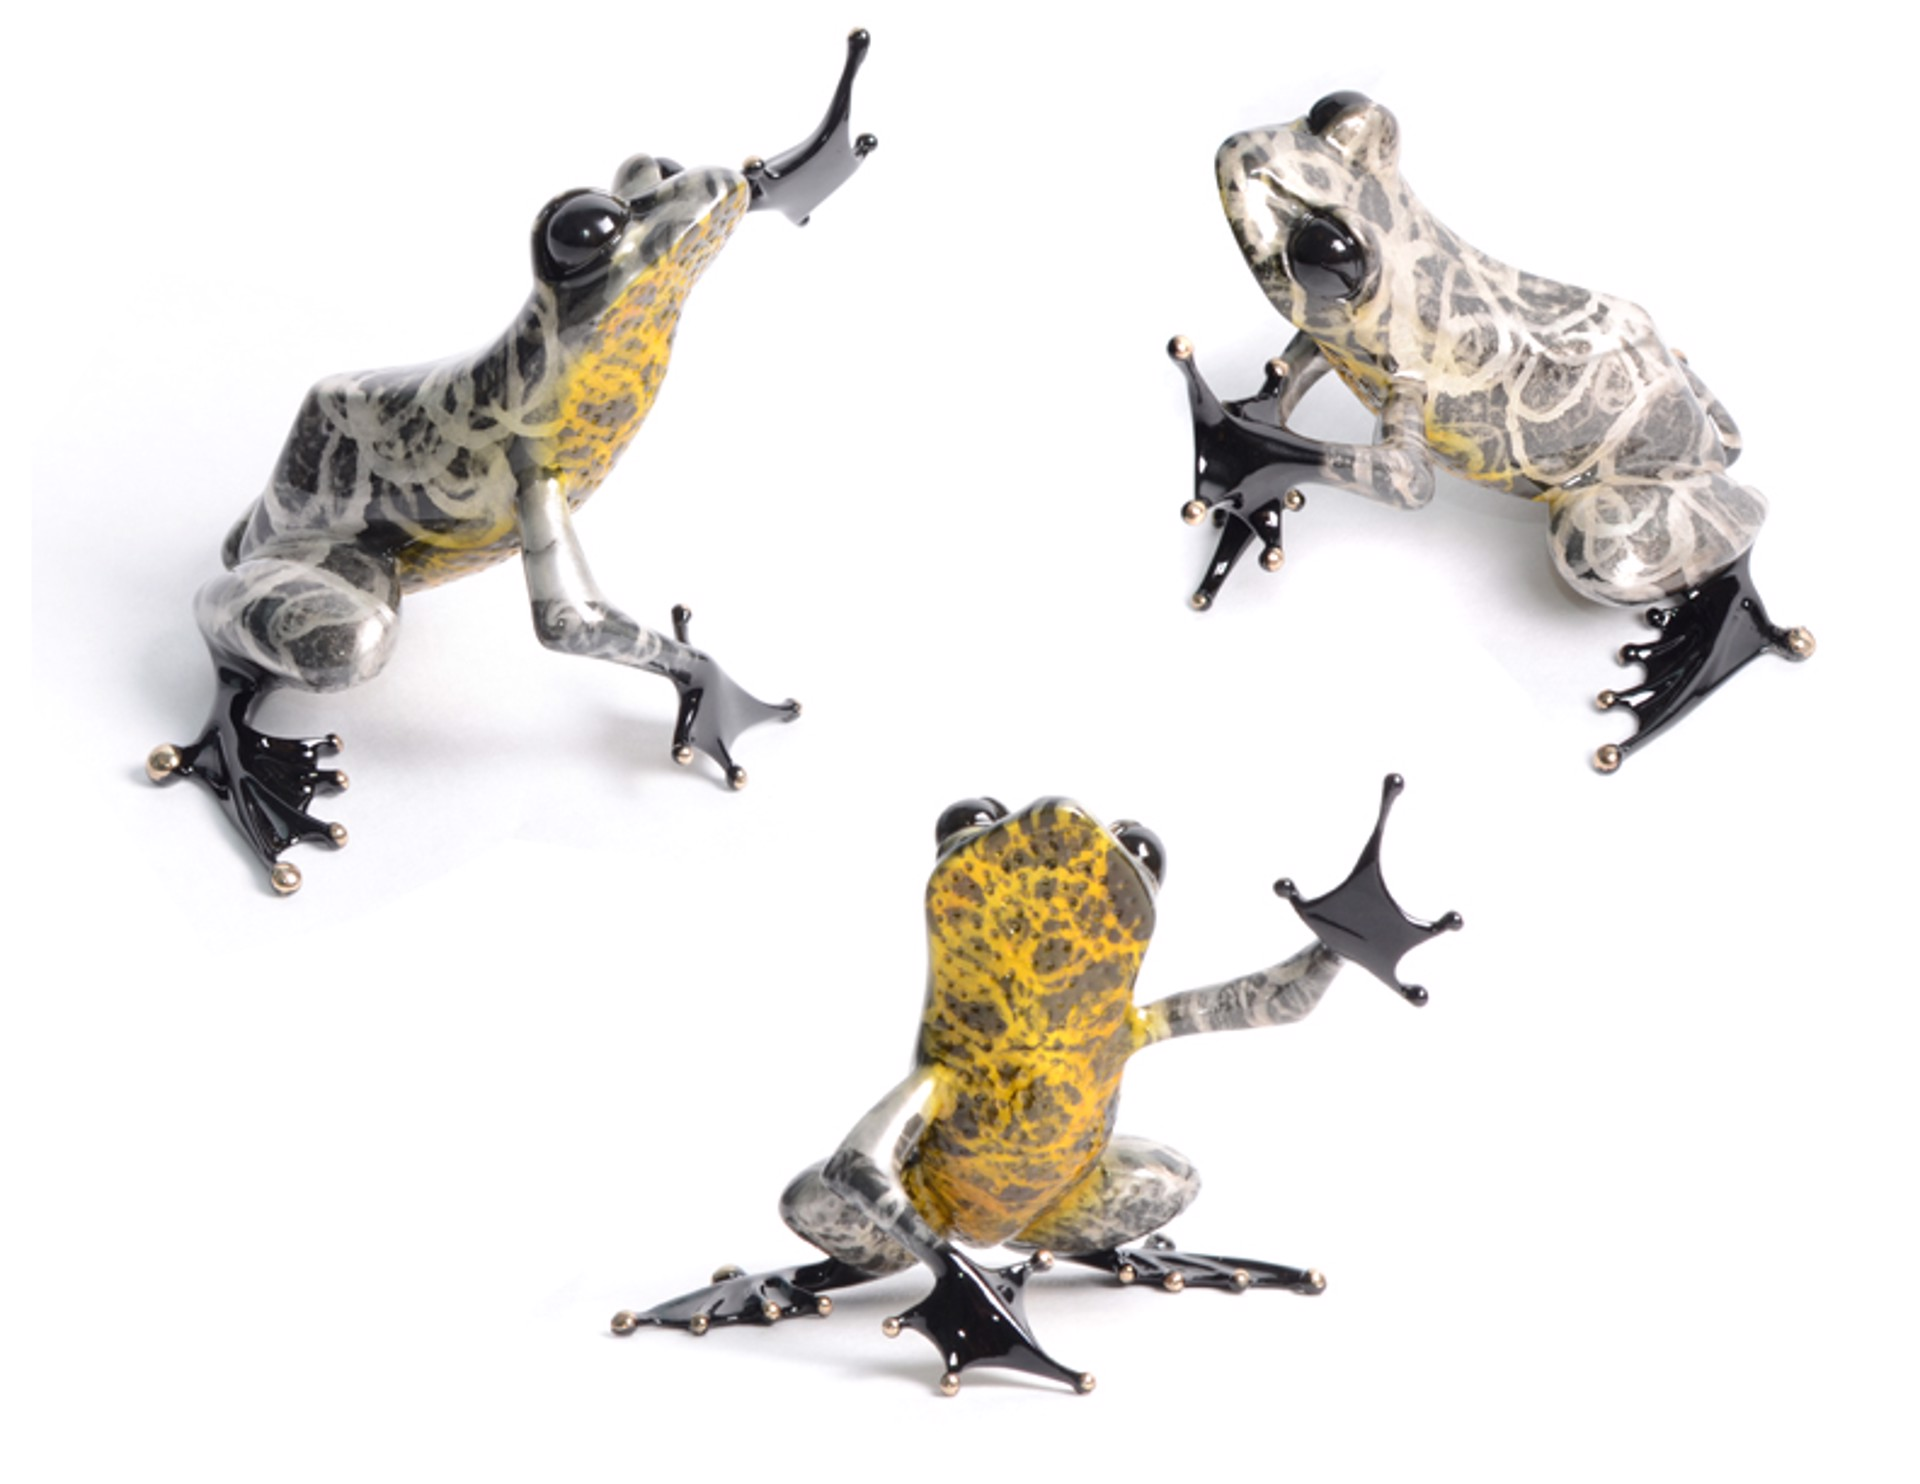 Firecracker Show Frog - Sterling BF185S2 by Tim Cotterill